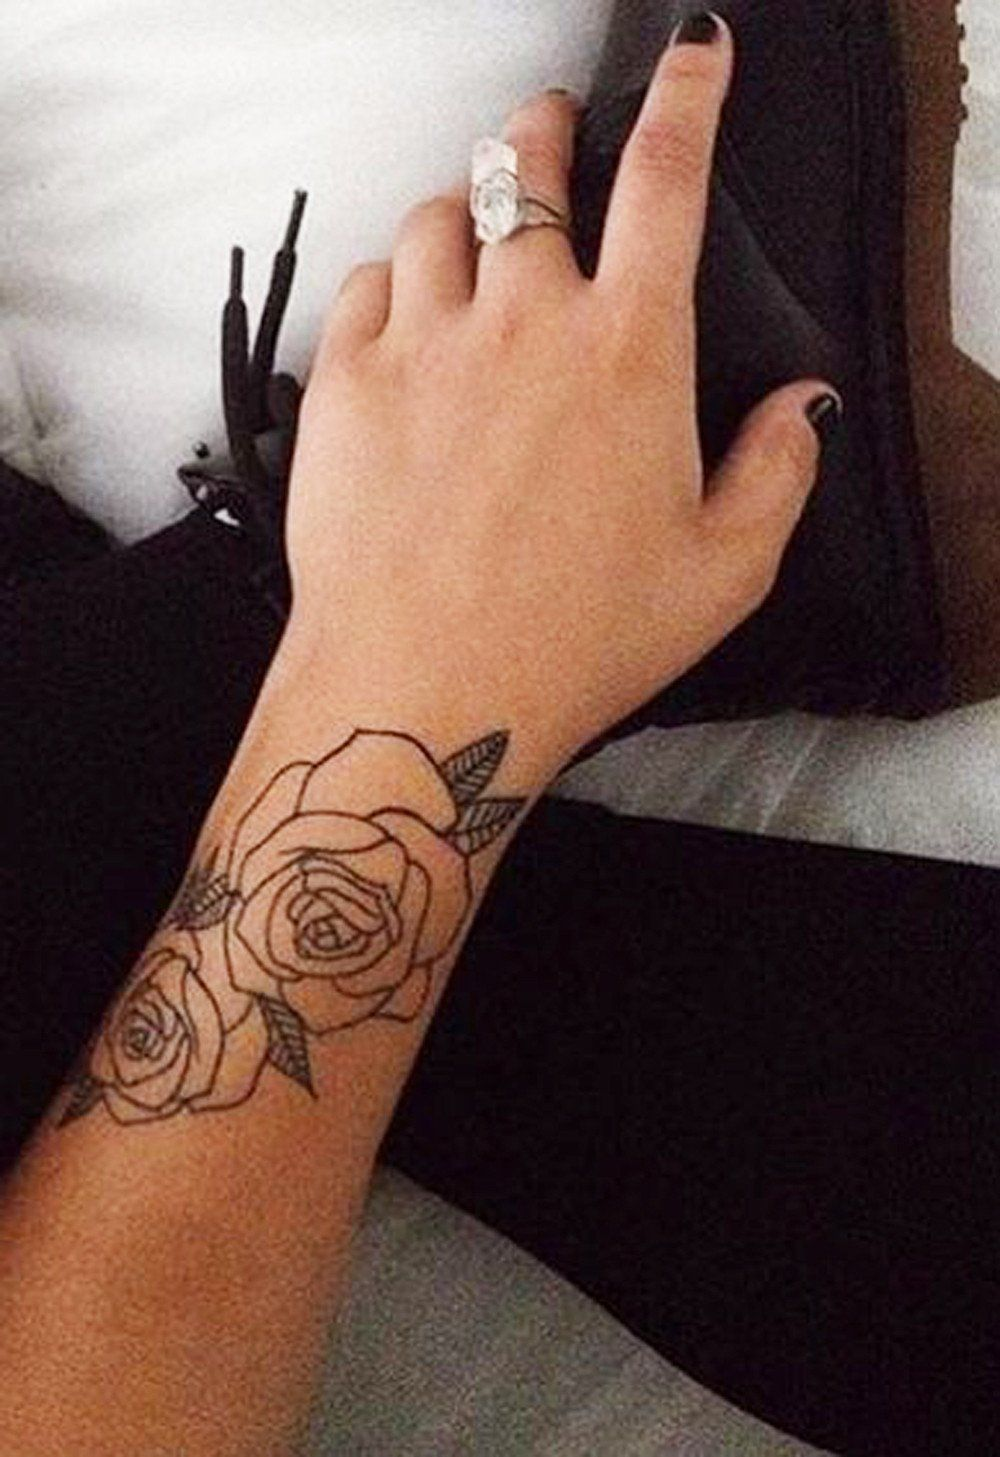 Black Rose Forearm Tattoo Ideas for Women